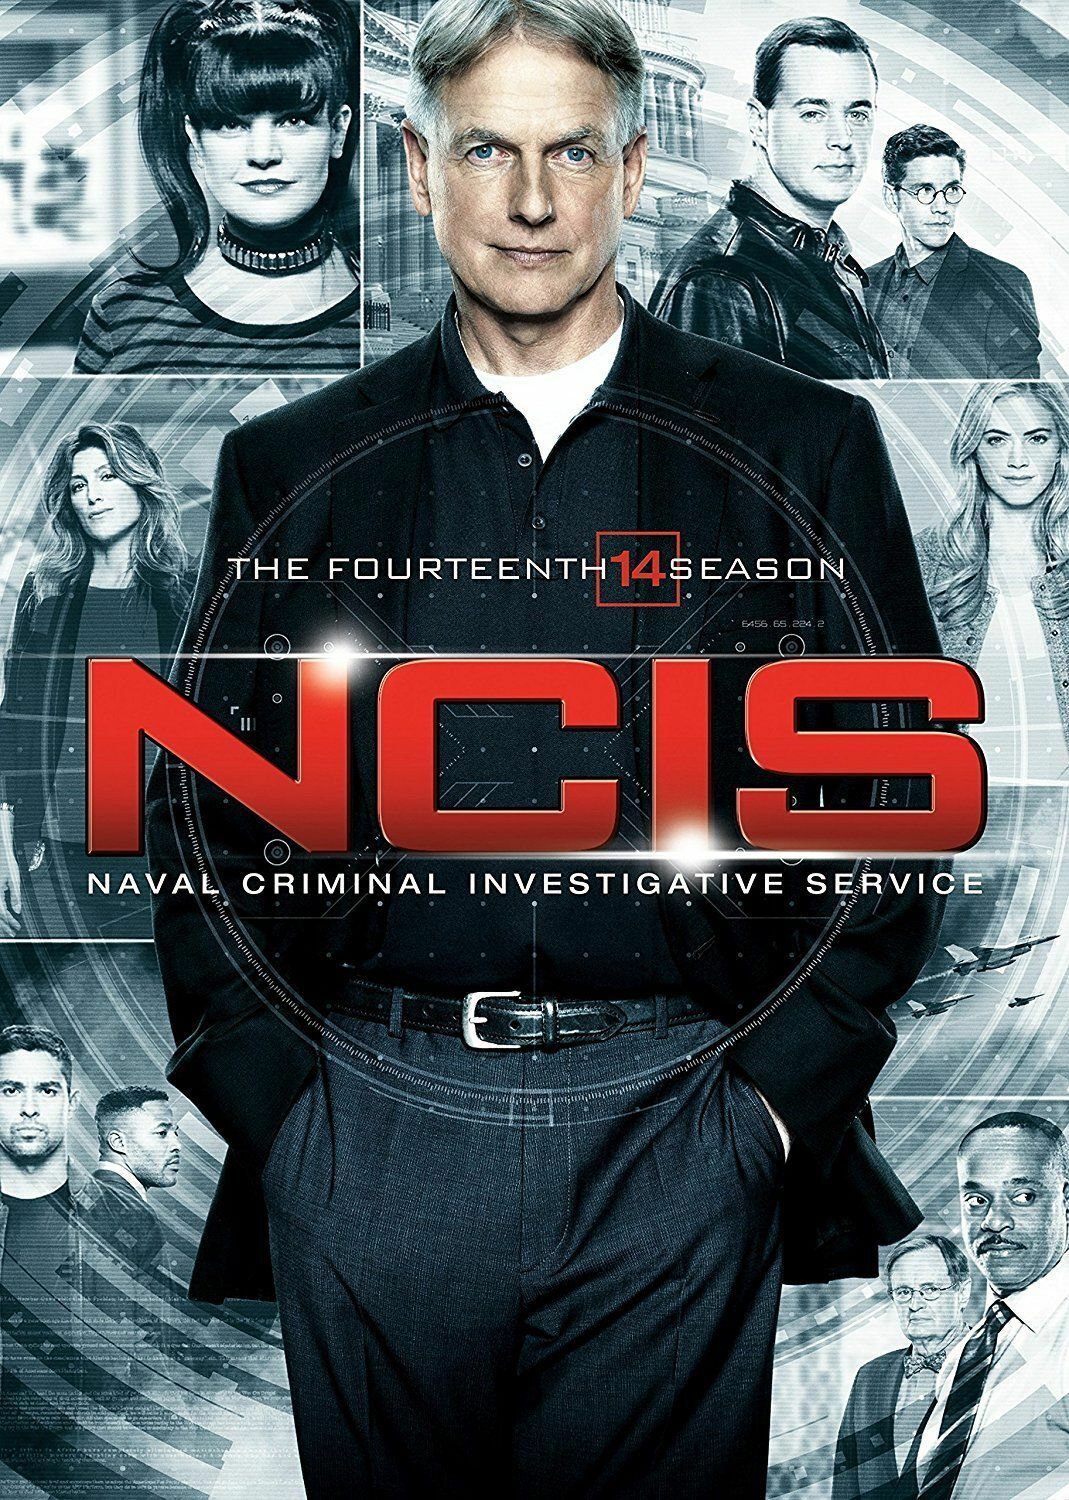 NCIS: The Fourteenth Season 14 (DVD, 2017, 6-Disc Set) - Brand New